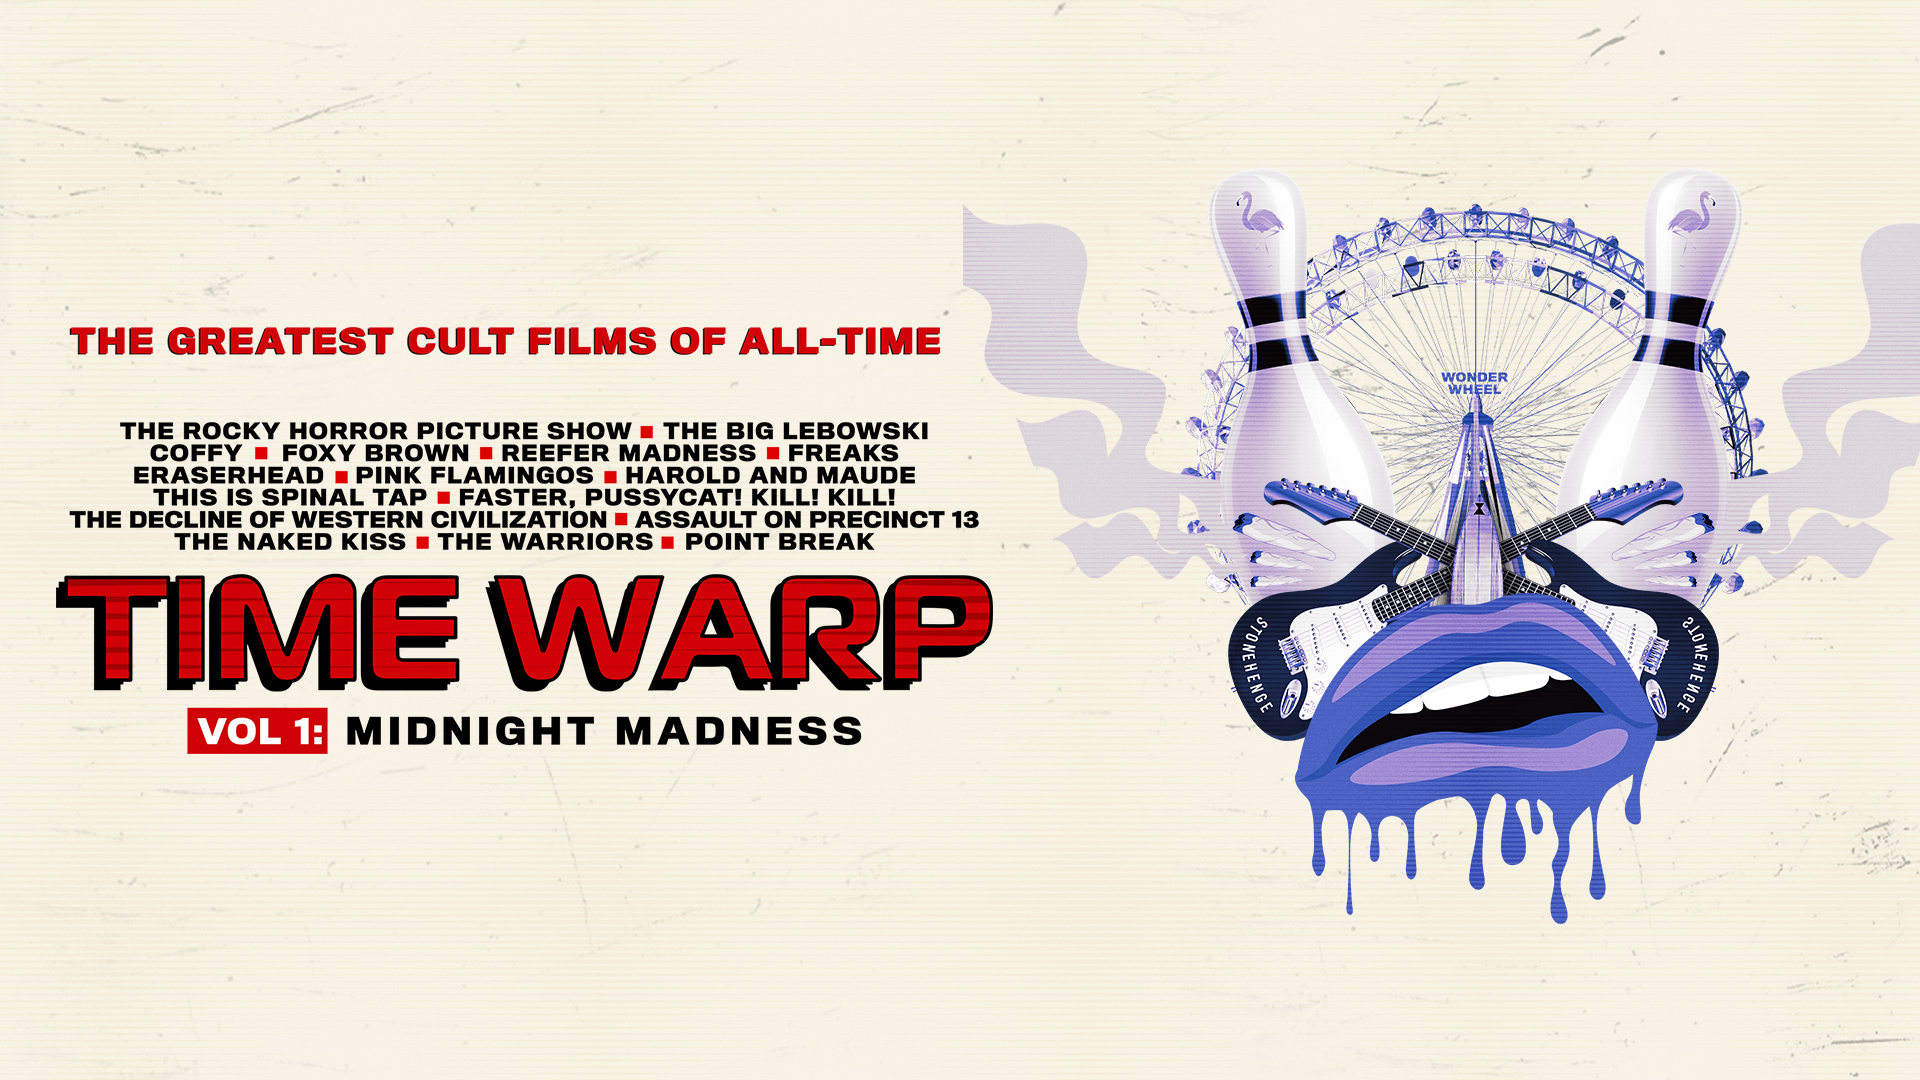 Time Warp: The Greatest Cult Films of All Time Vol 1 - Midnight Madness